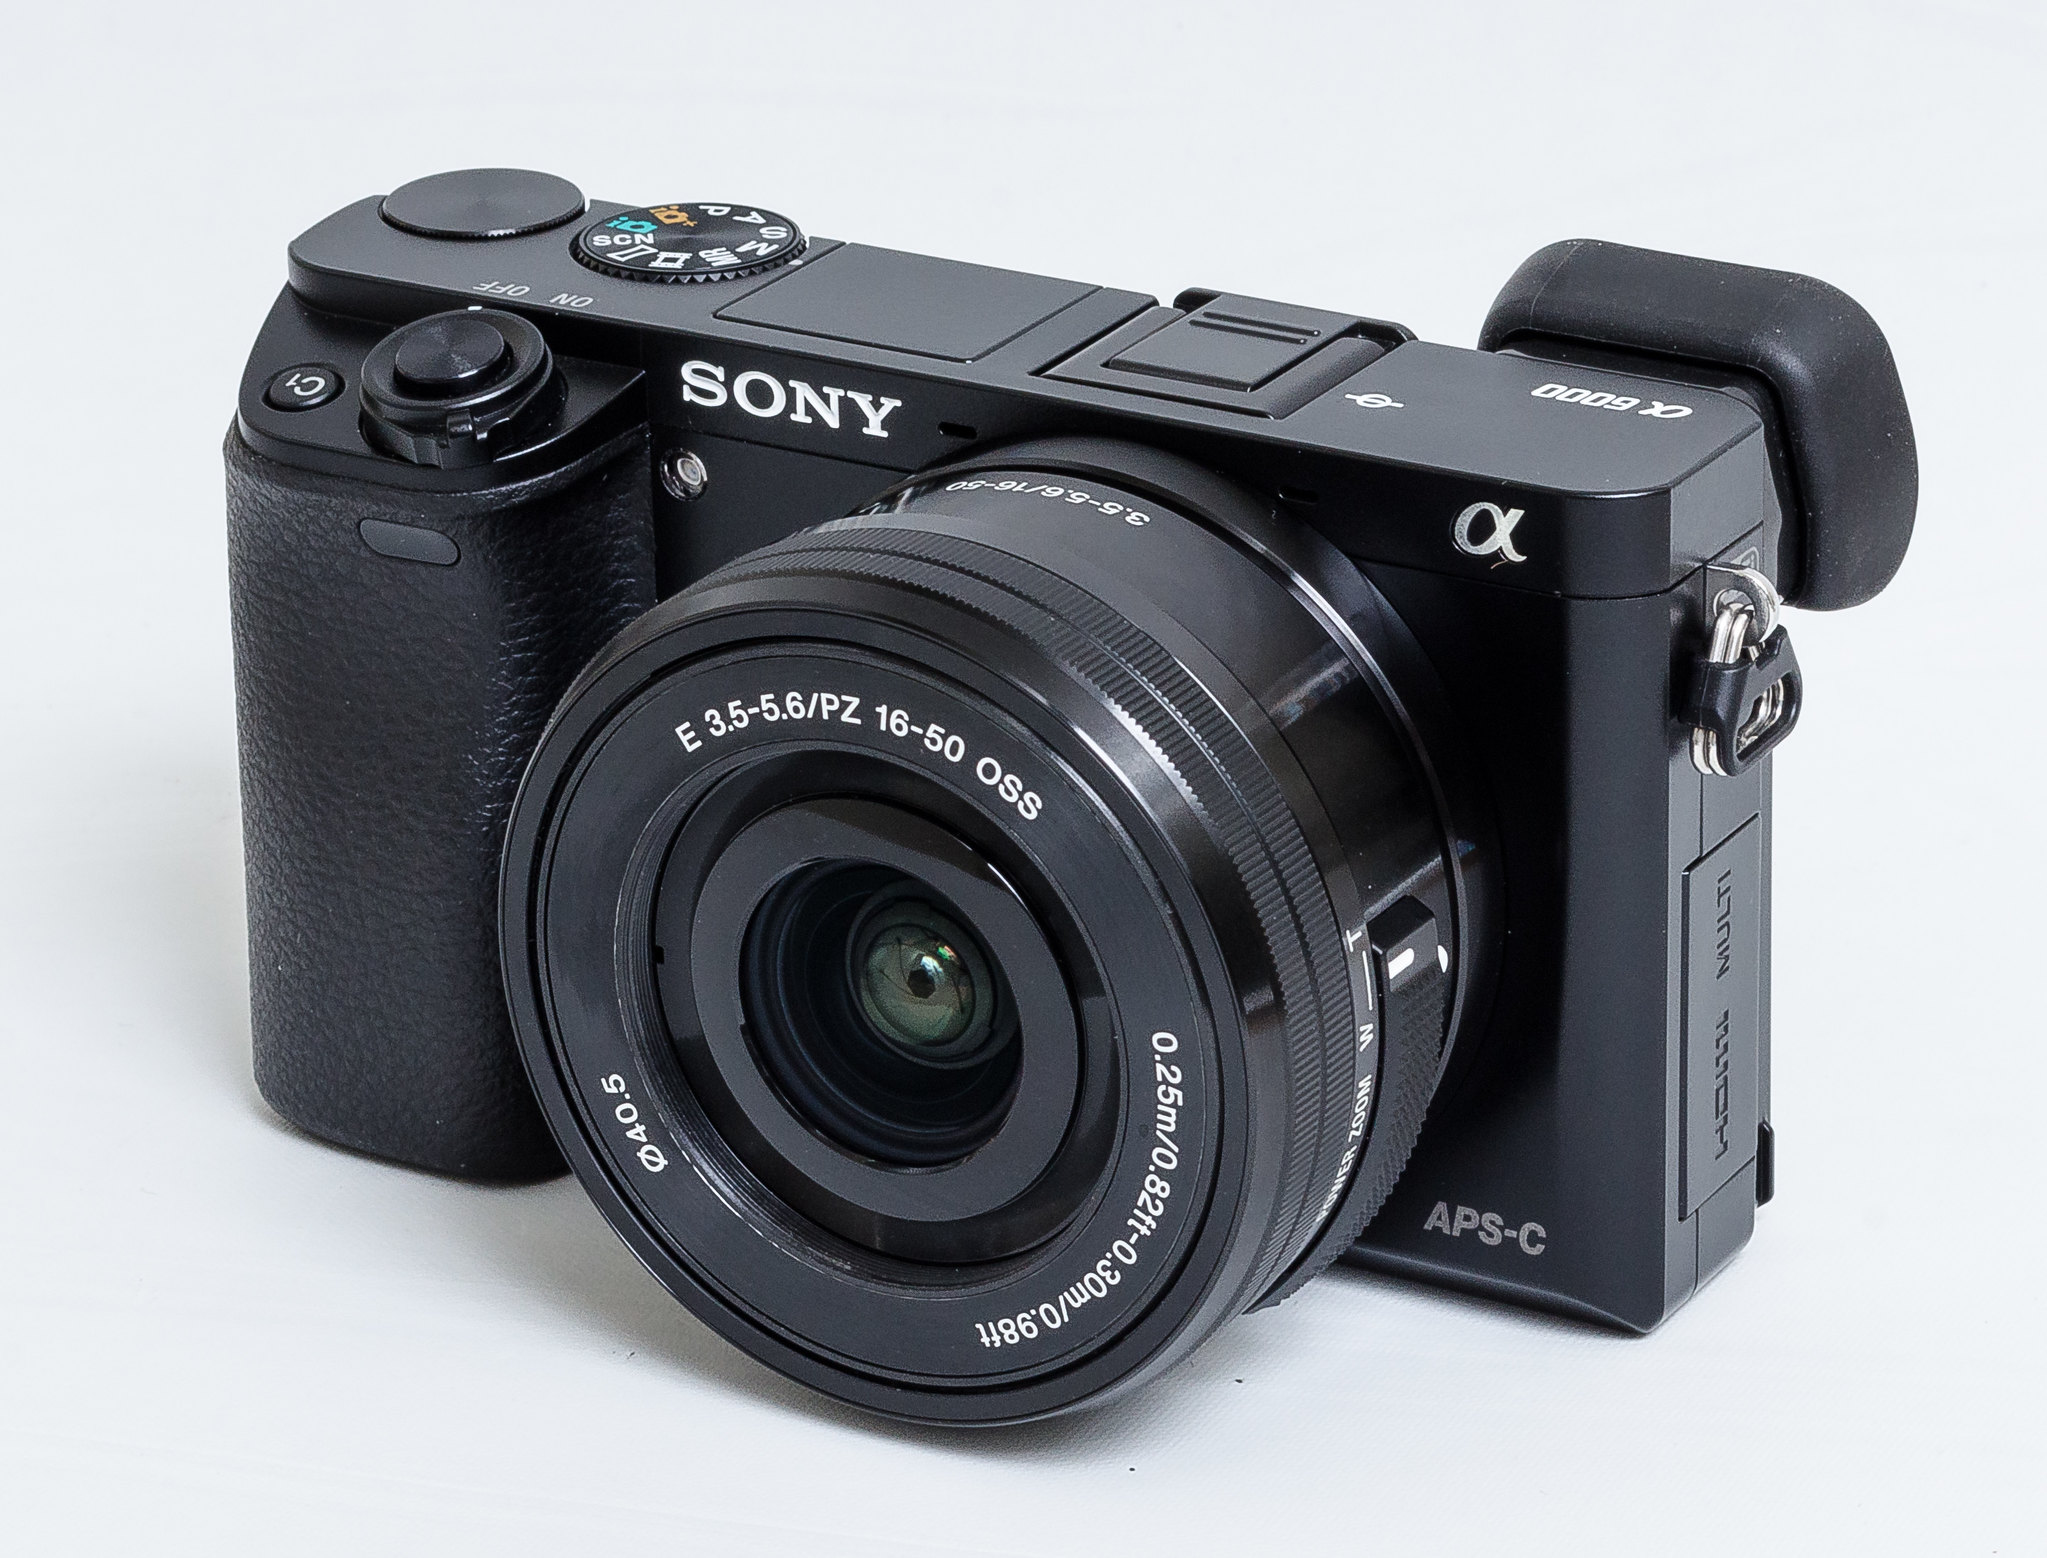 What's the Best Flash for the Sony A6000 Mirrorless Camera?